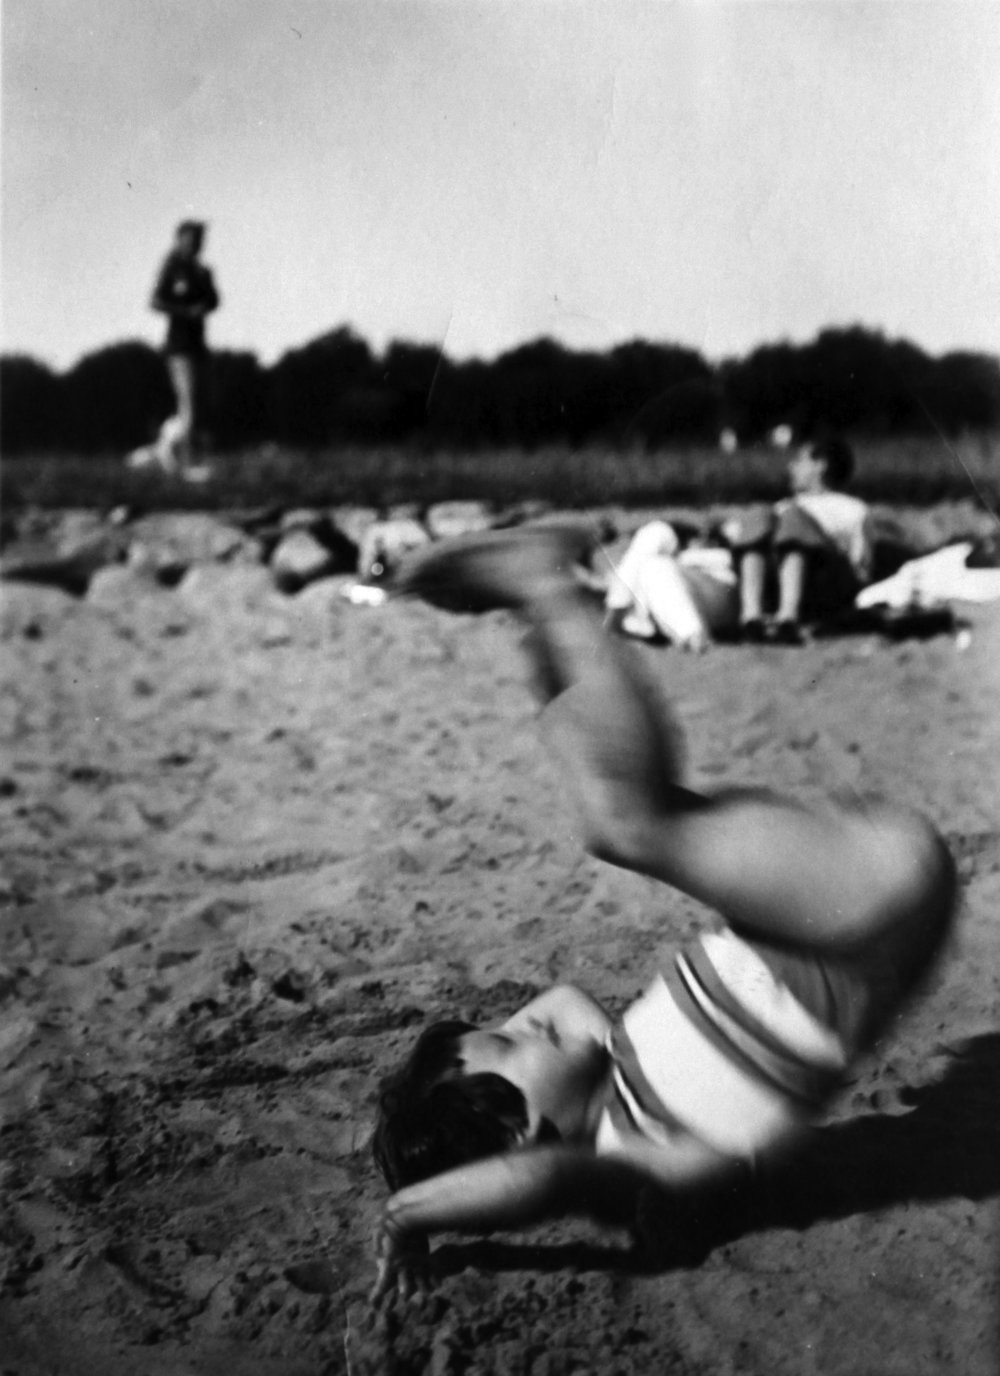 Here I am doing a somersault on the beach, circa 1935